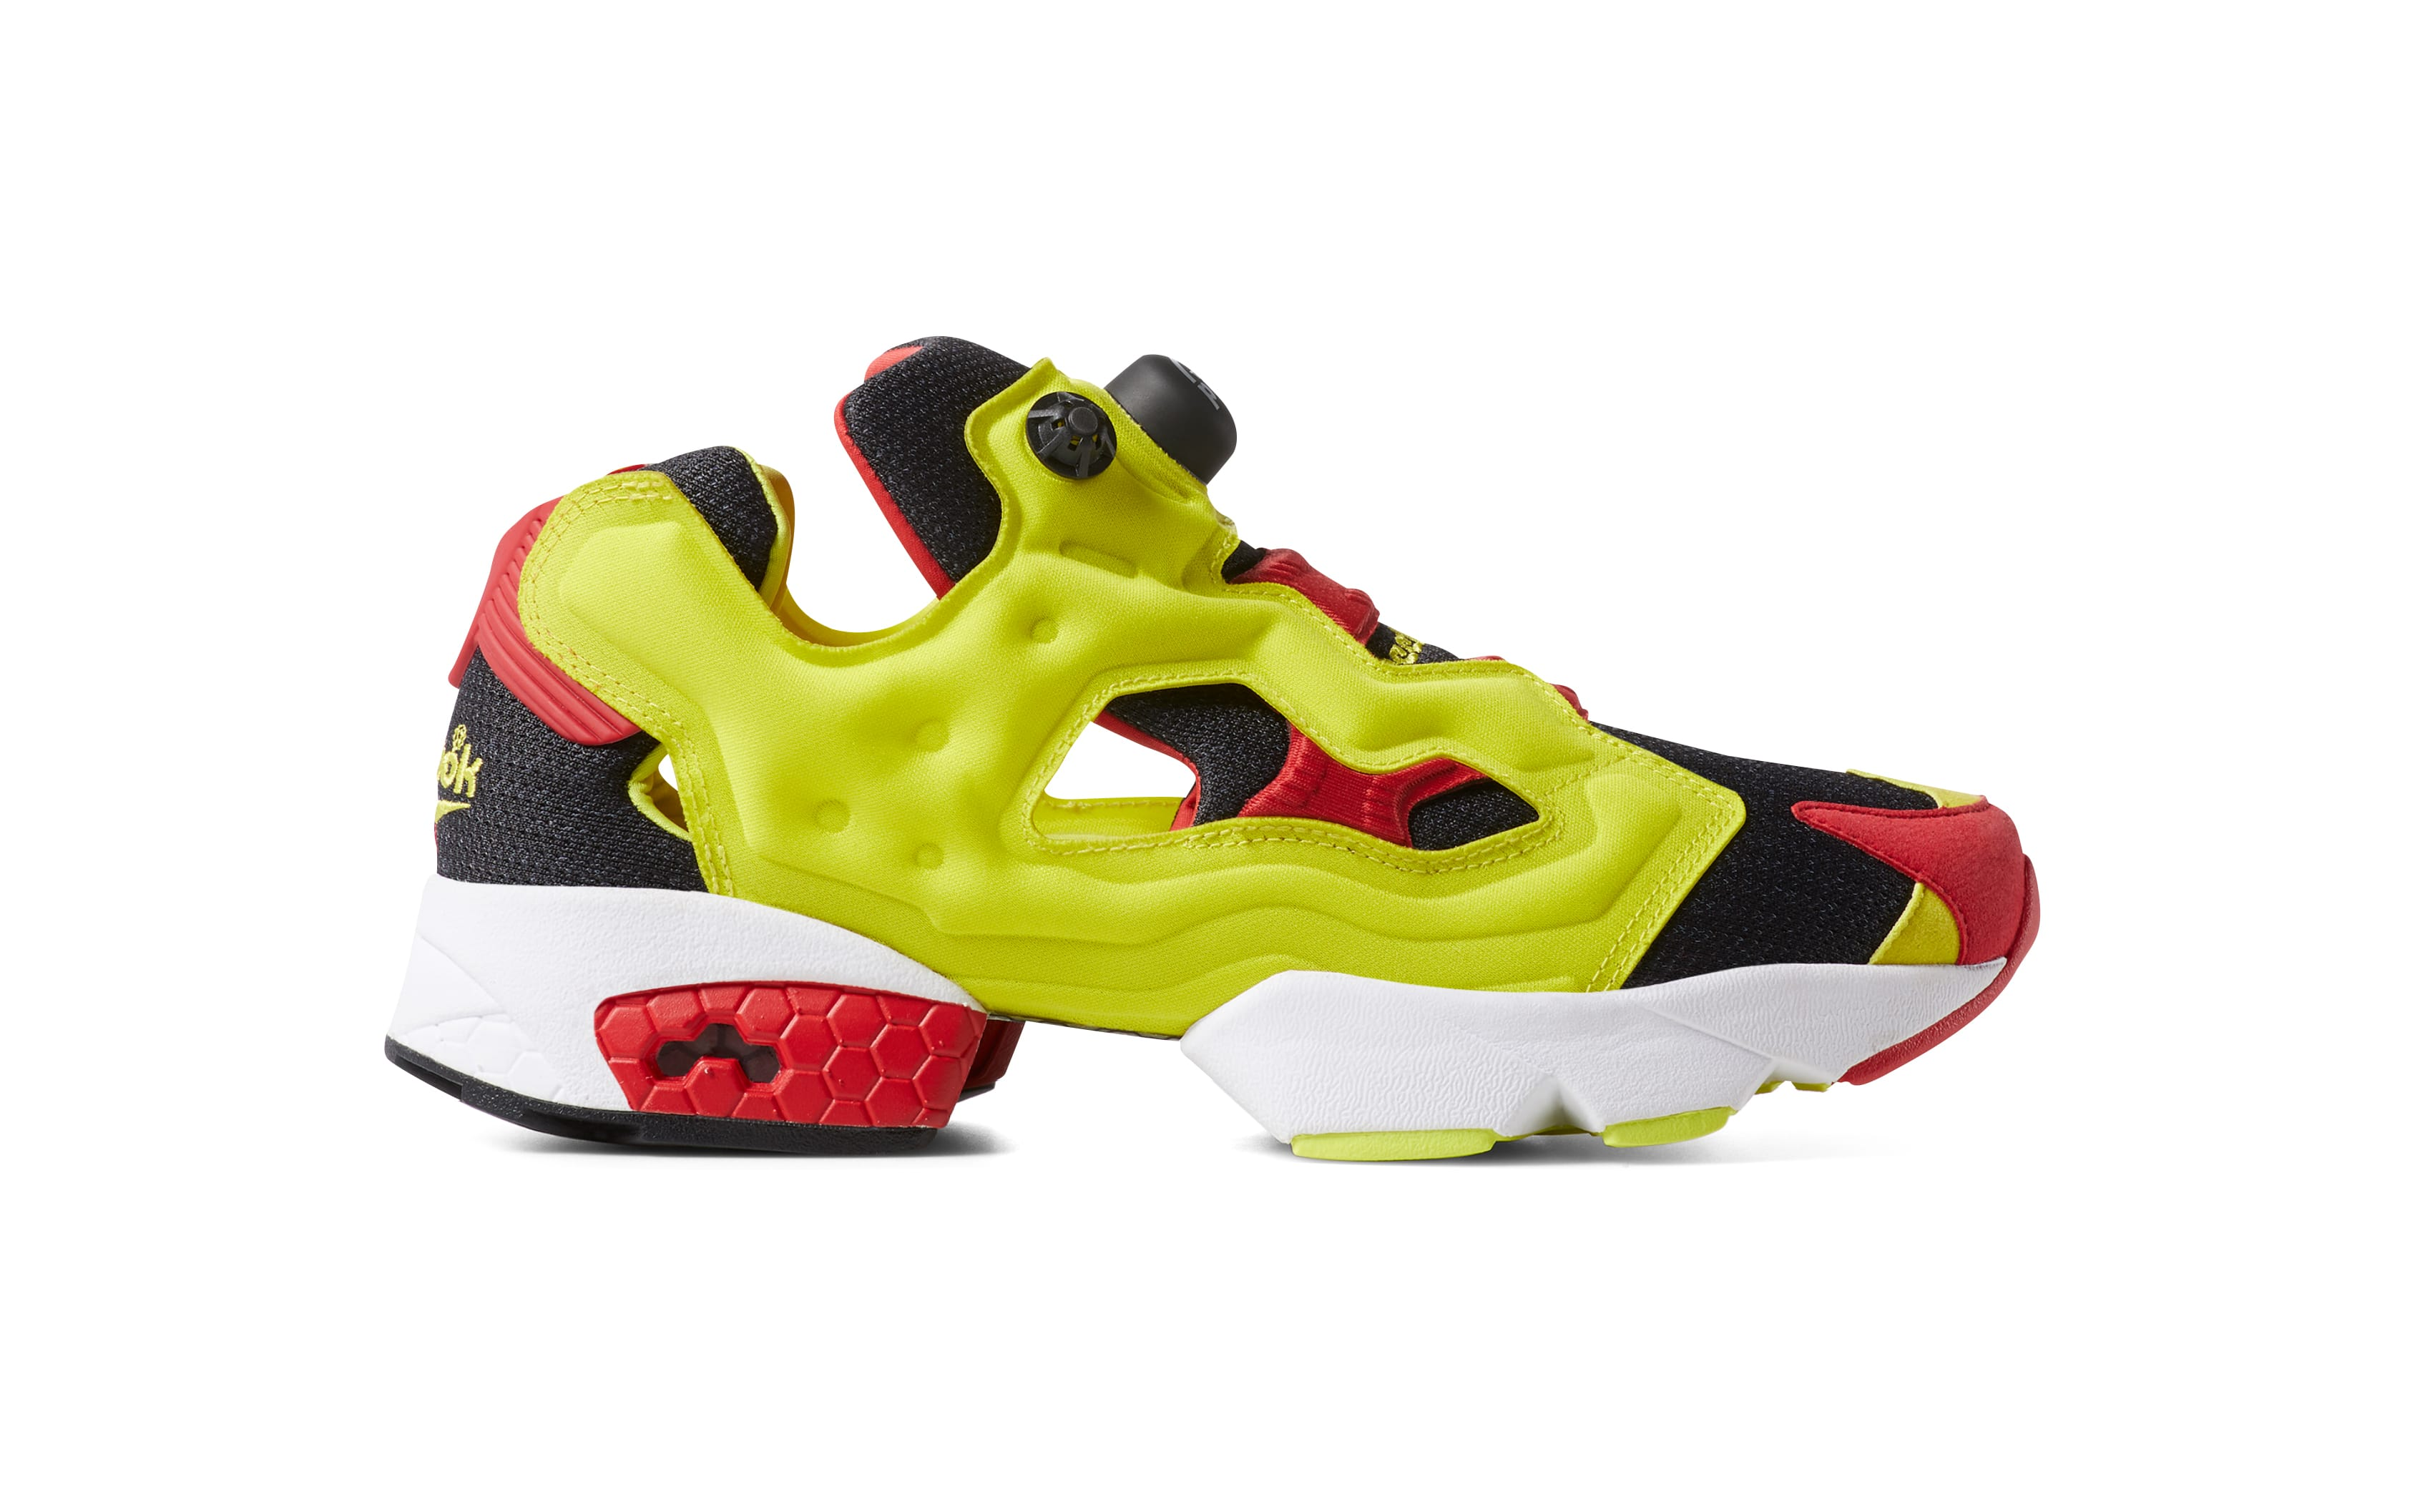 f8626d26b How The Reebok Pump Became An Icon In The Sneaker World